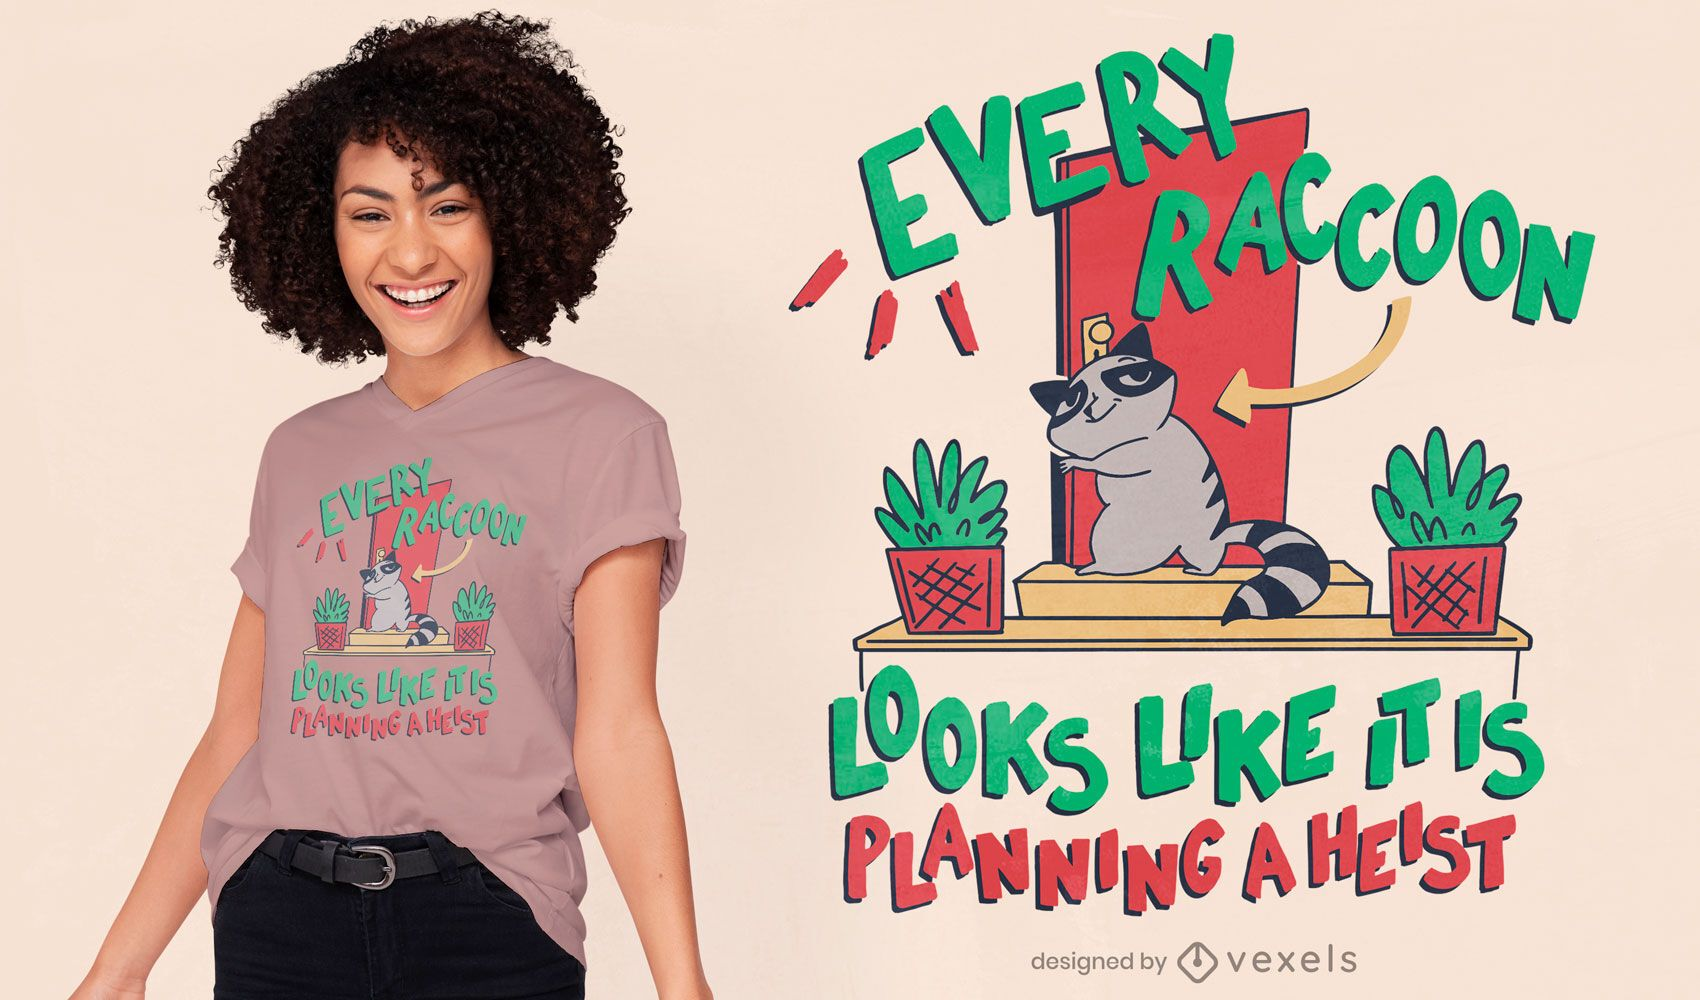 Raccoon plan funny quote t-shirt design